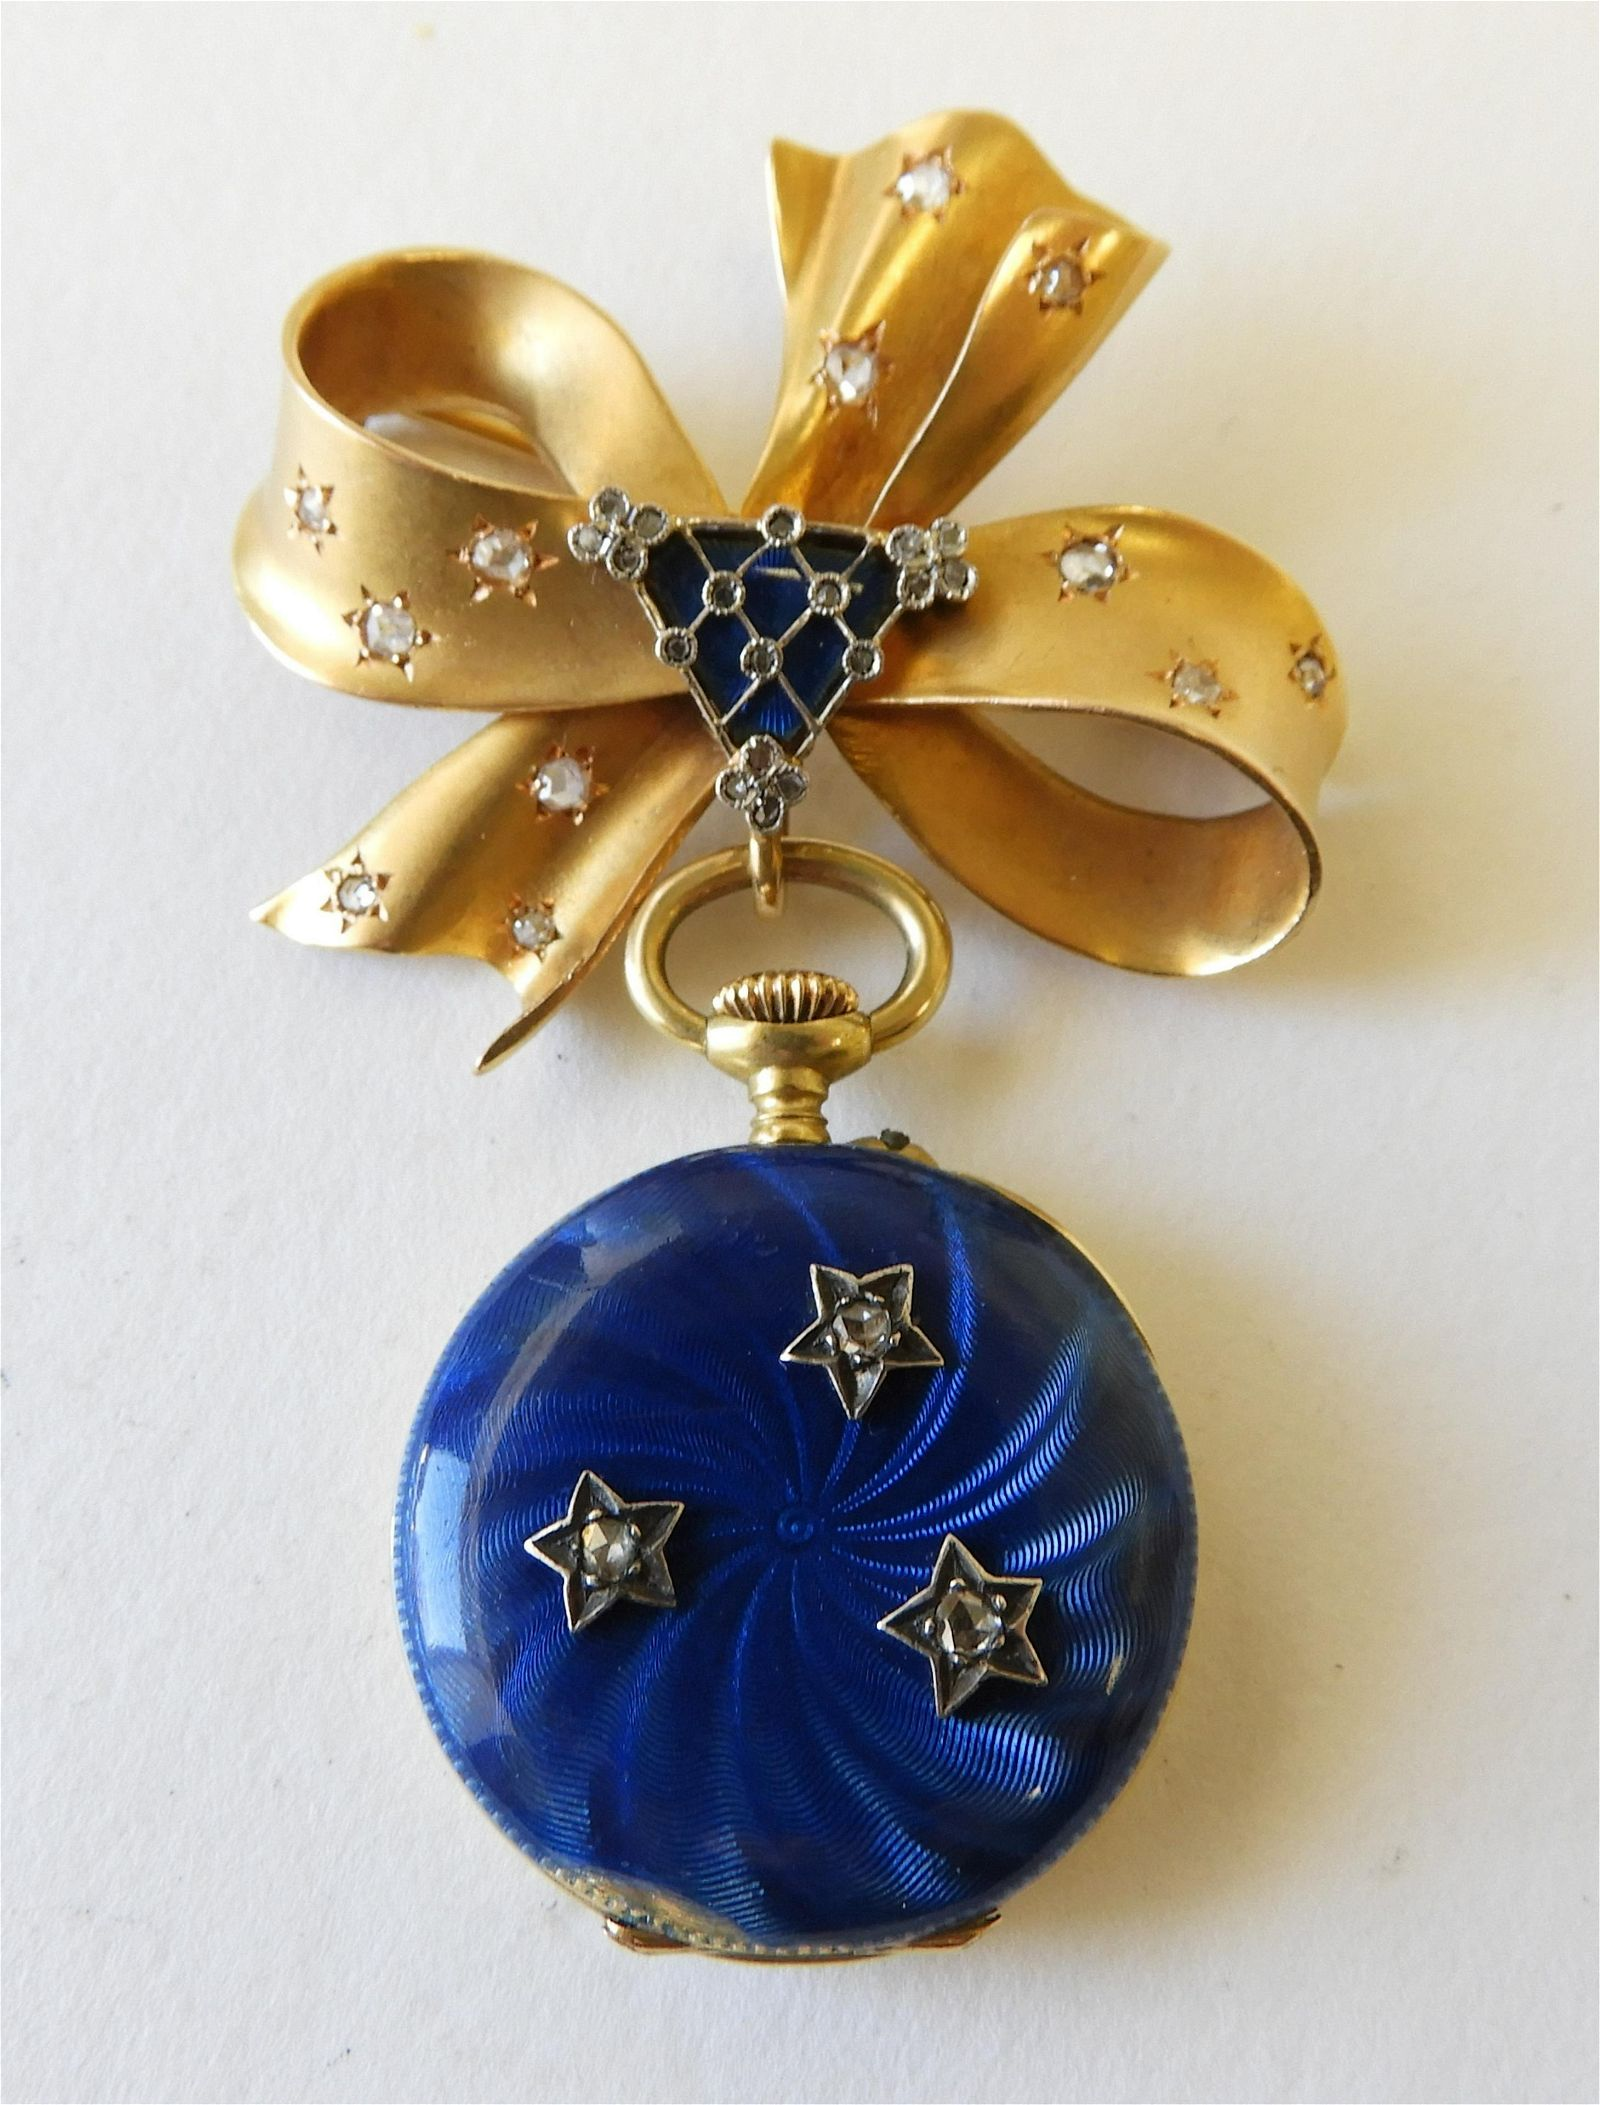 Tiffany & Co Pocket Watch with Associated Brooch